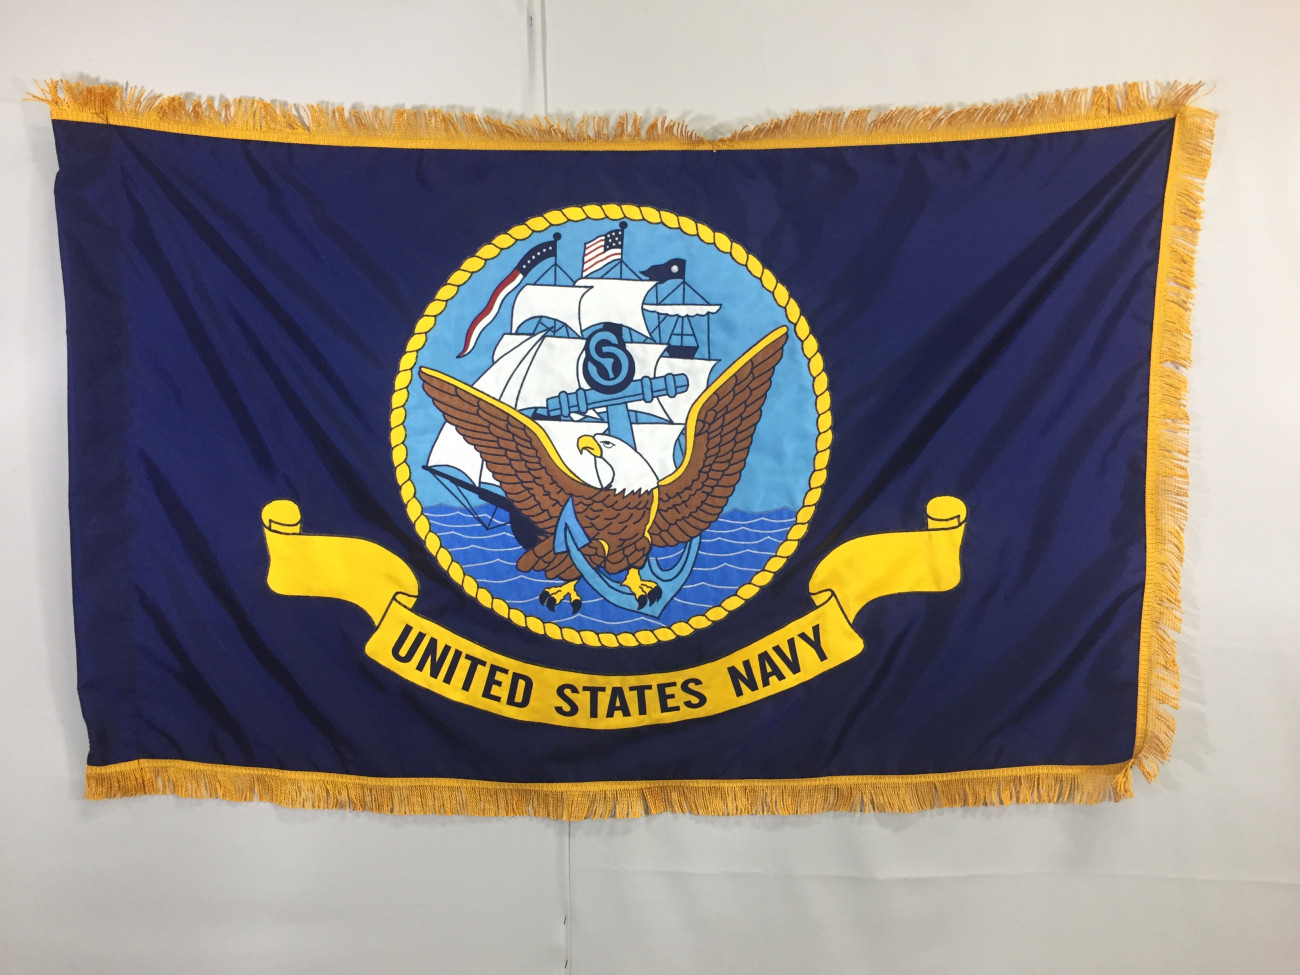 Us navy applique flags made in the usa gettysburg flag works